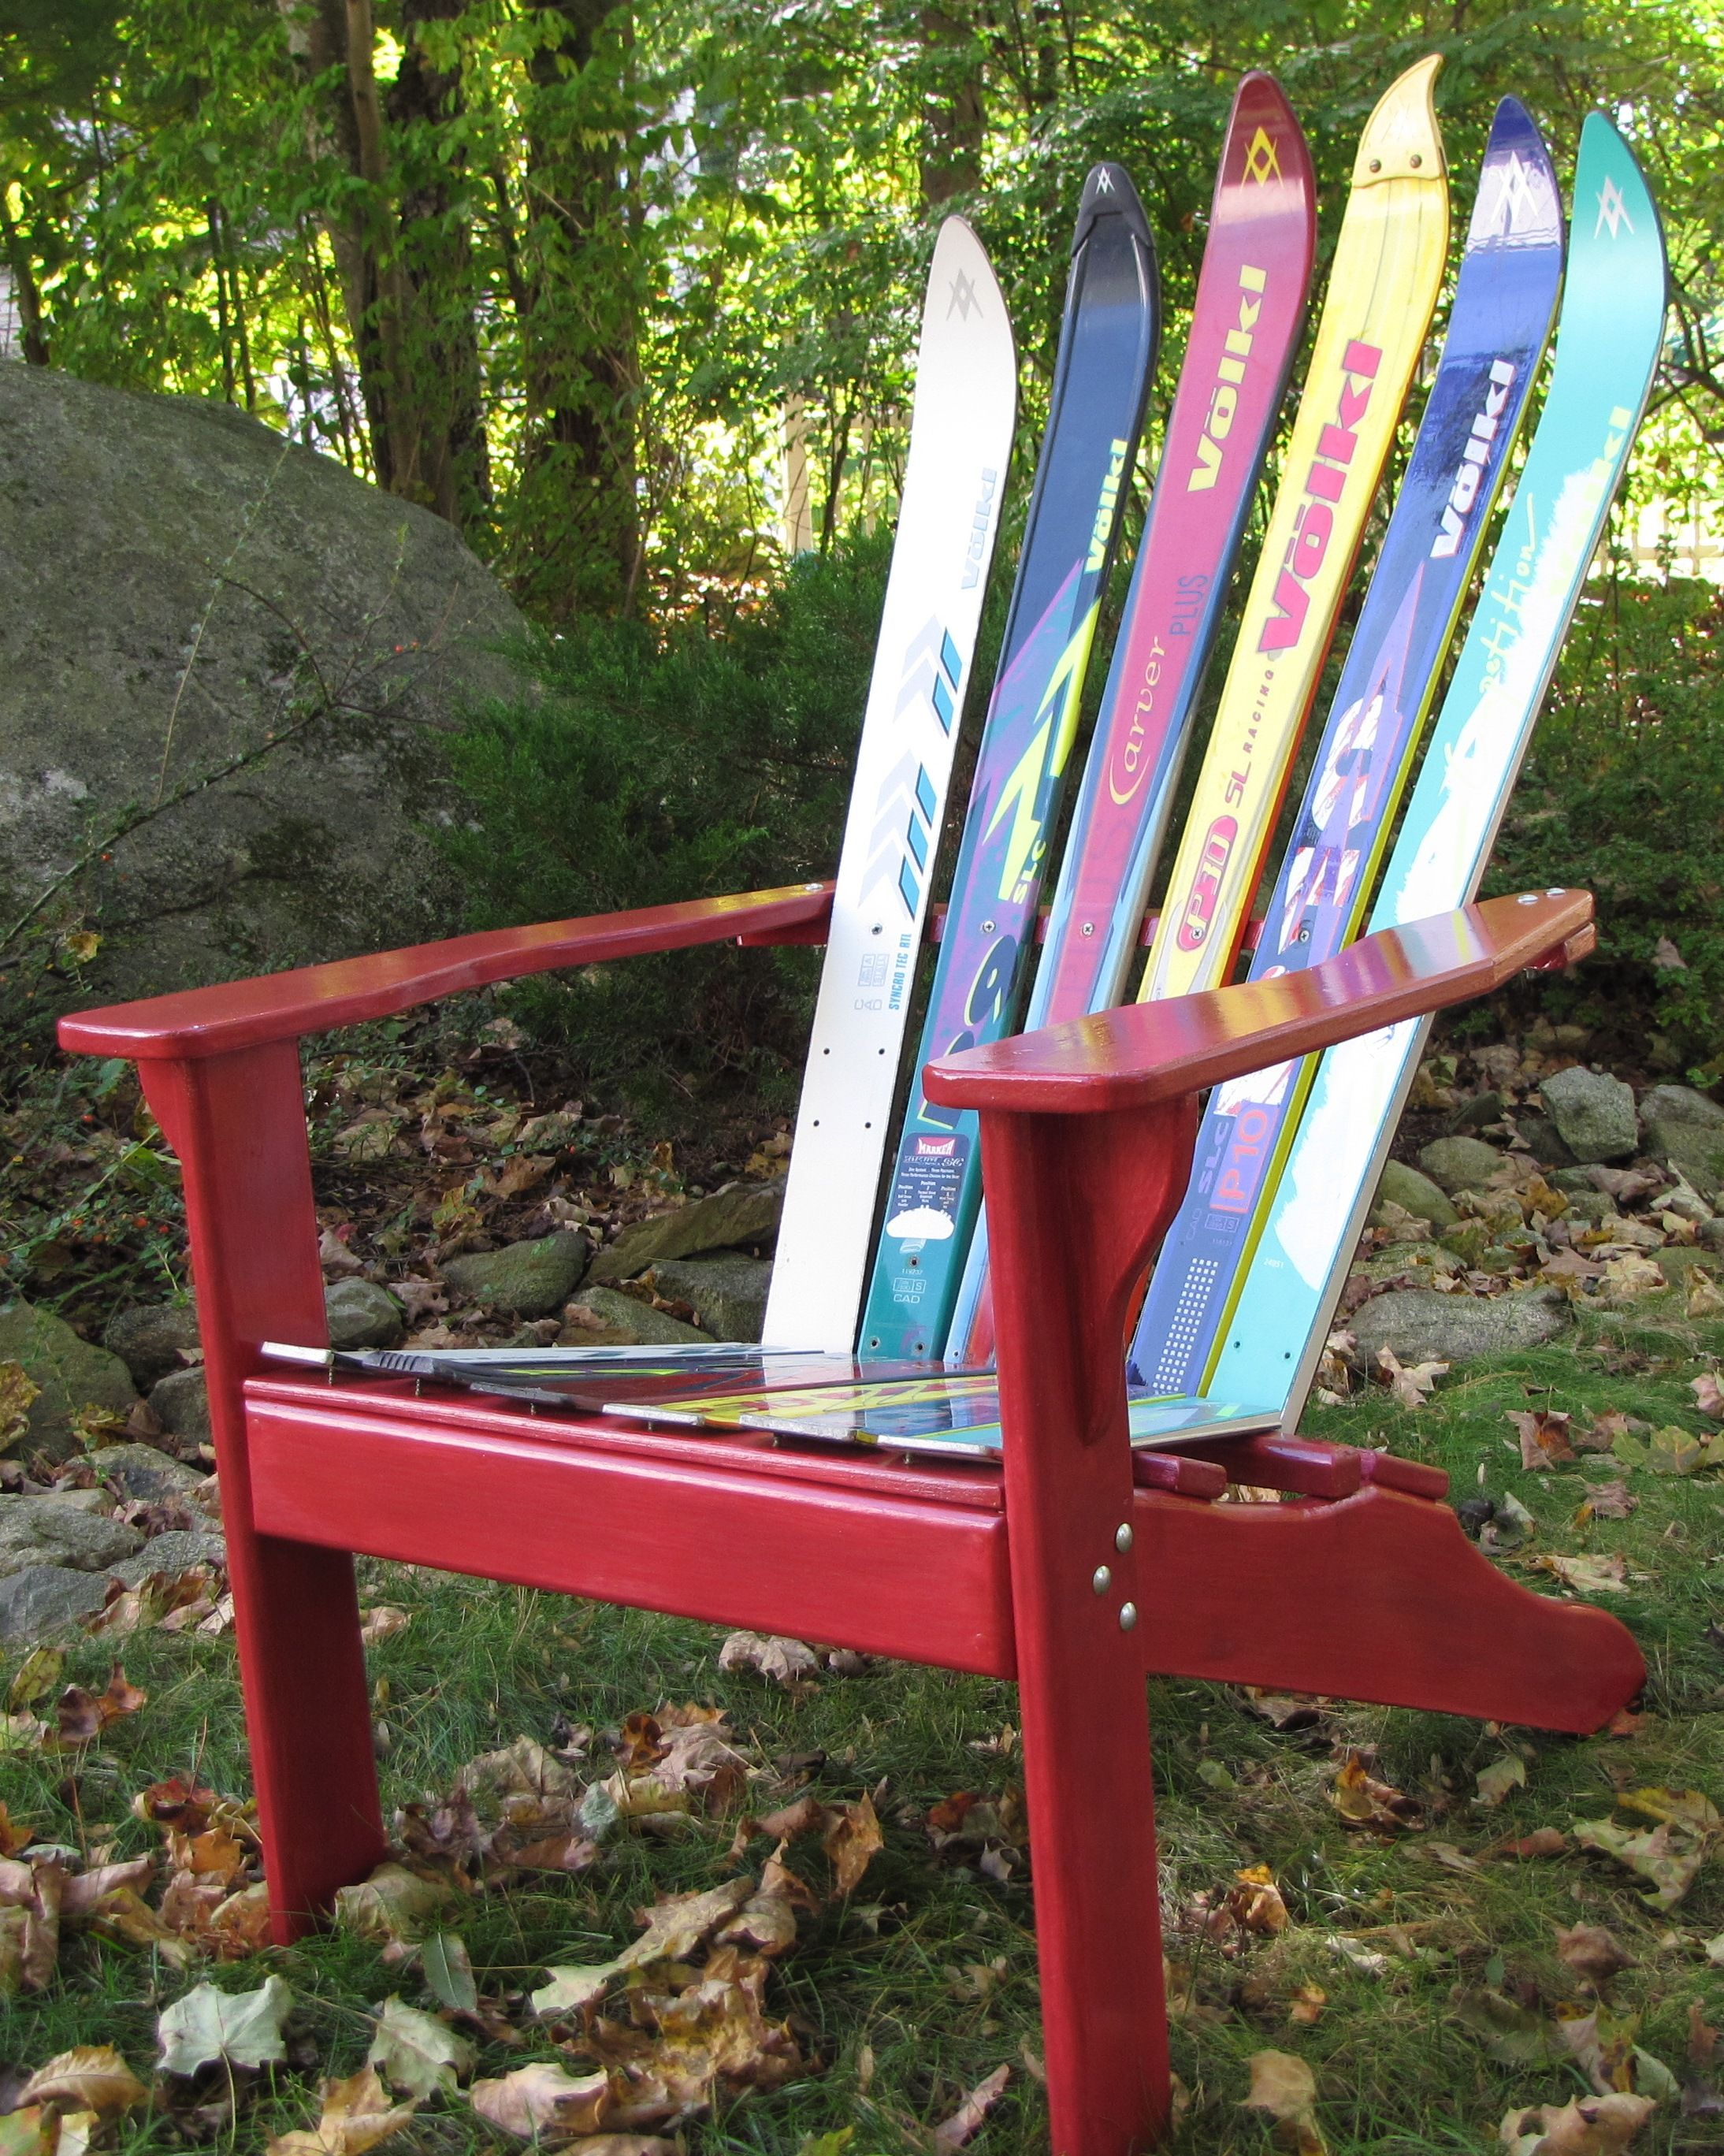 Adirondack Ski Chair made with recycled skis. New England